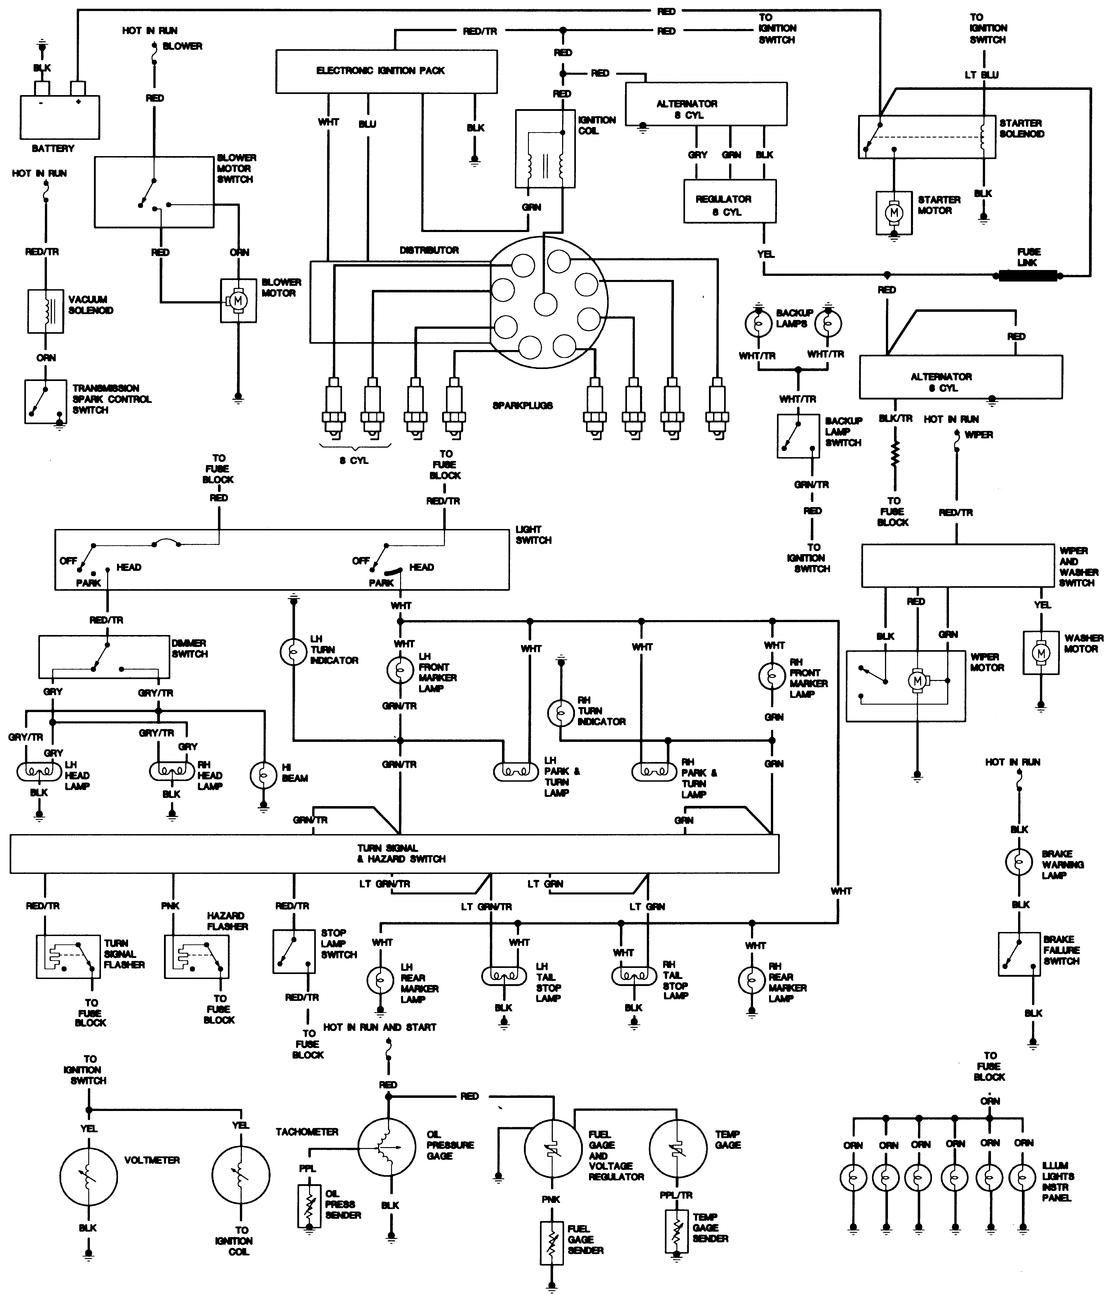 Wiring Diagram Cj7 Jeep Powerking